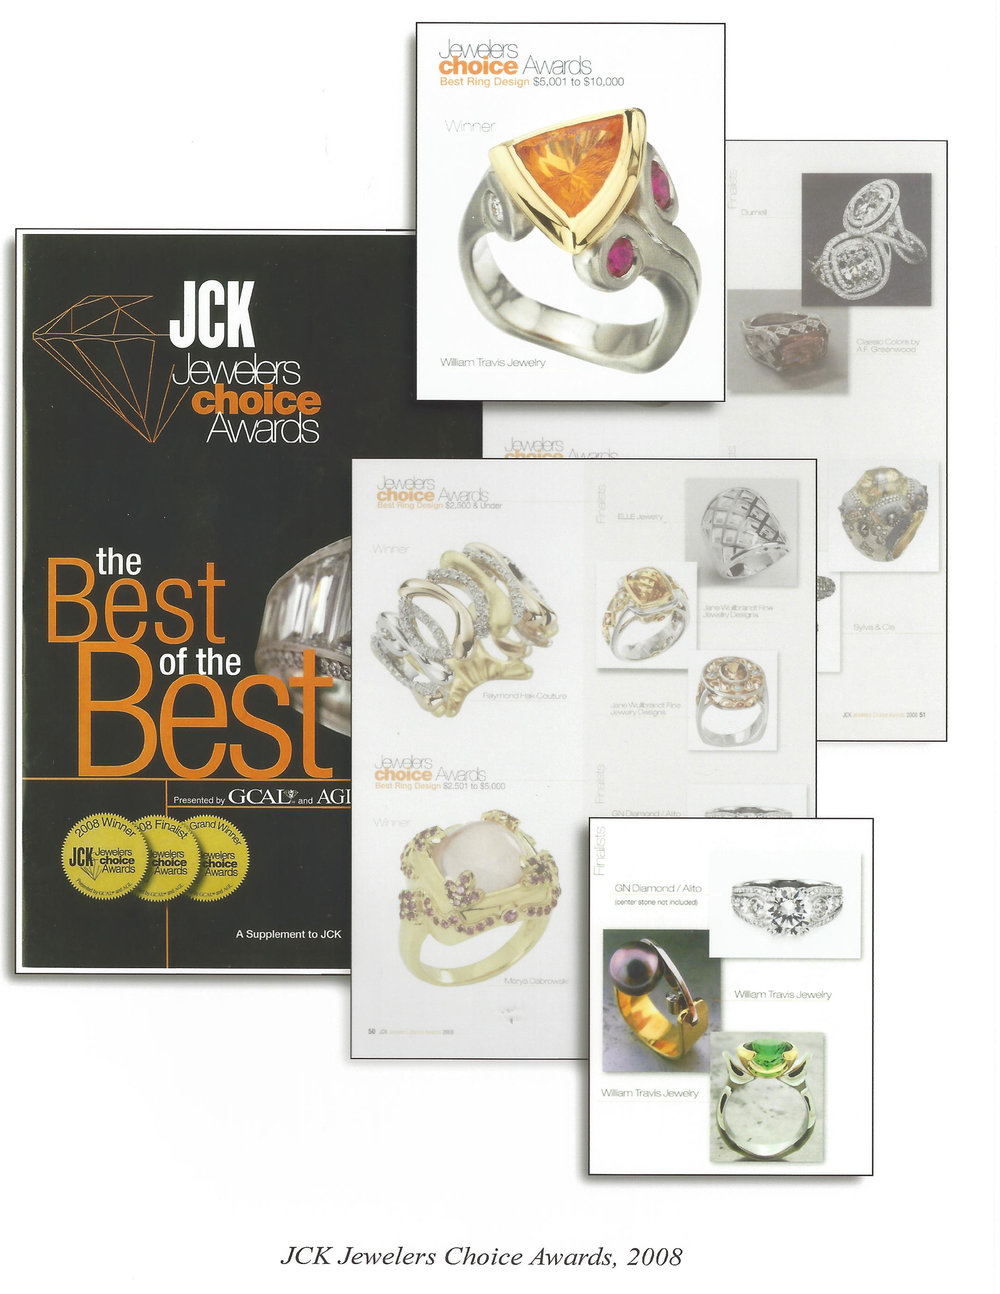 jck-jewelers-choice-awards-2008.jpg